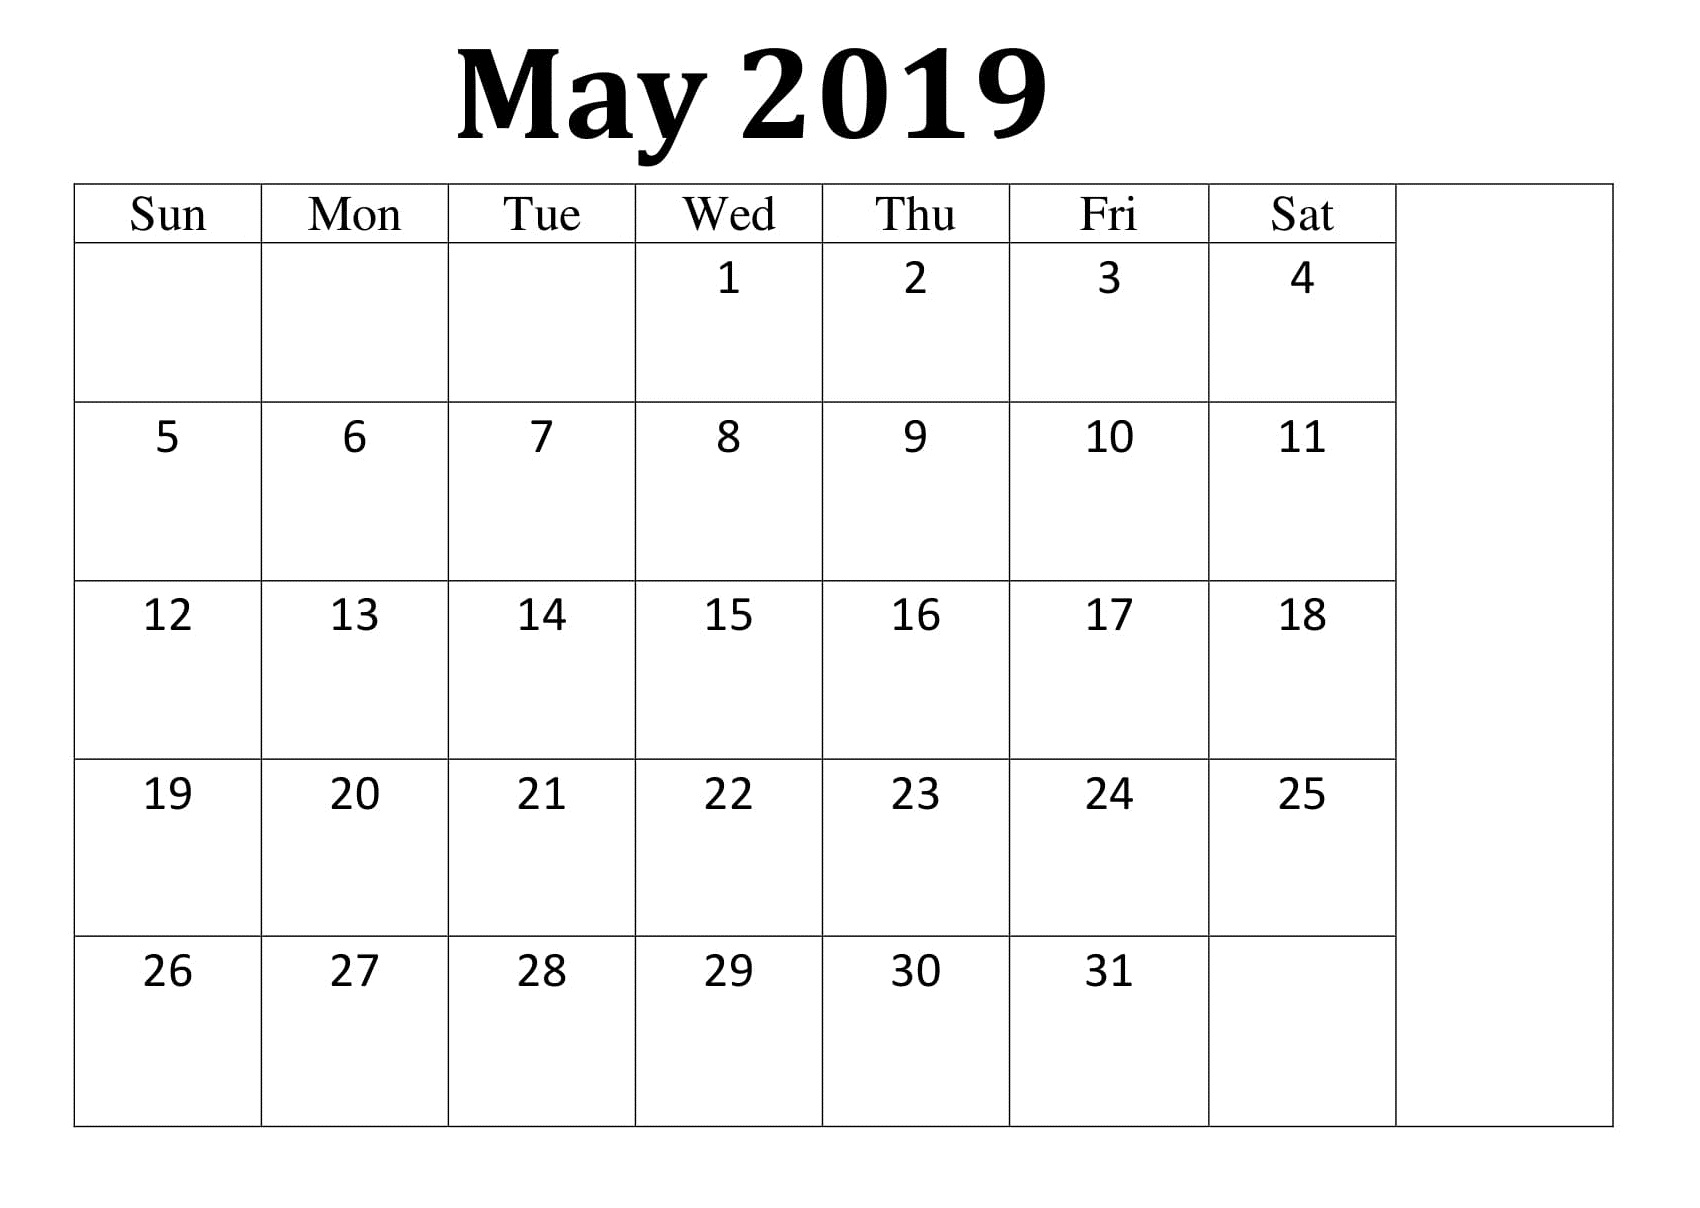 May 2019 Template Calendar Printable